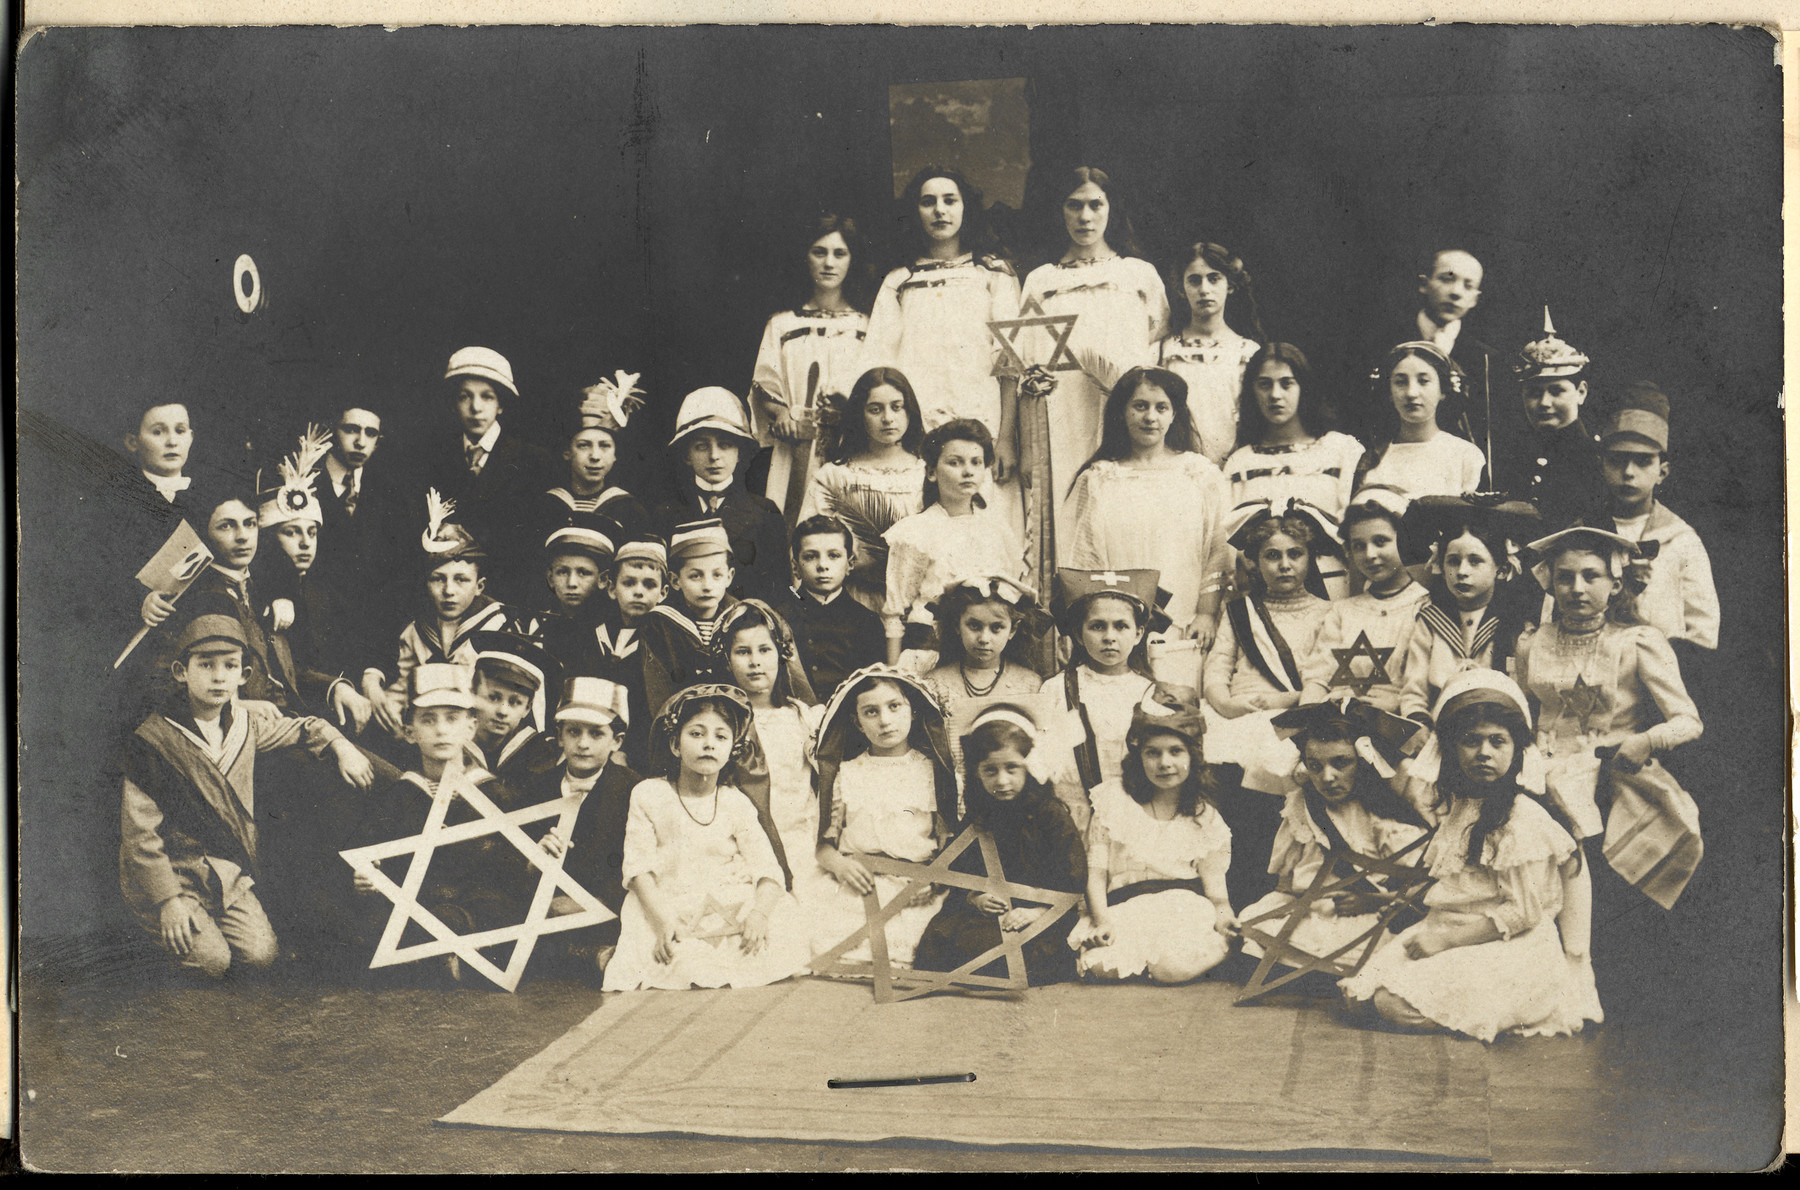 Jewish children dressed in costumes pose for a group portrait surrounded by large Stars of David.  Lotte Orgler is pictured in the second row on the far right.